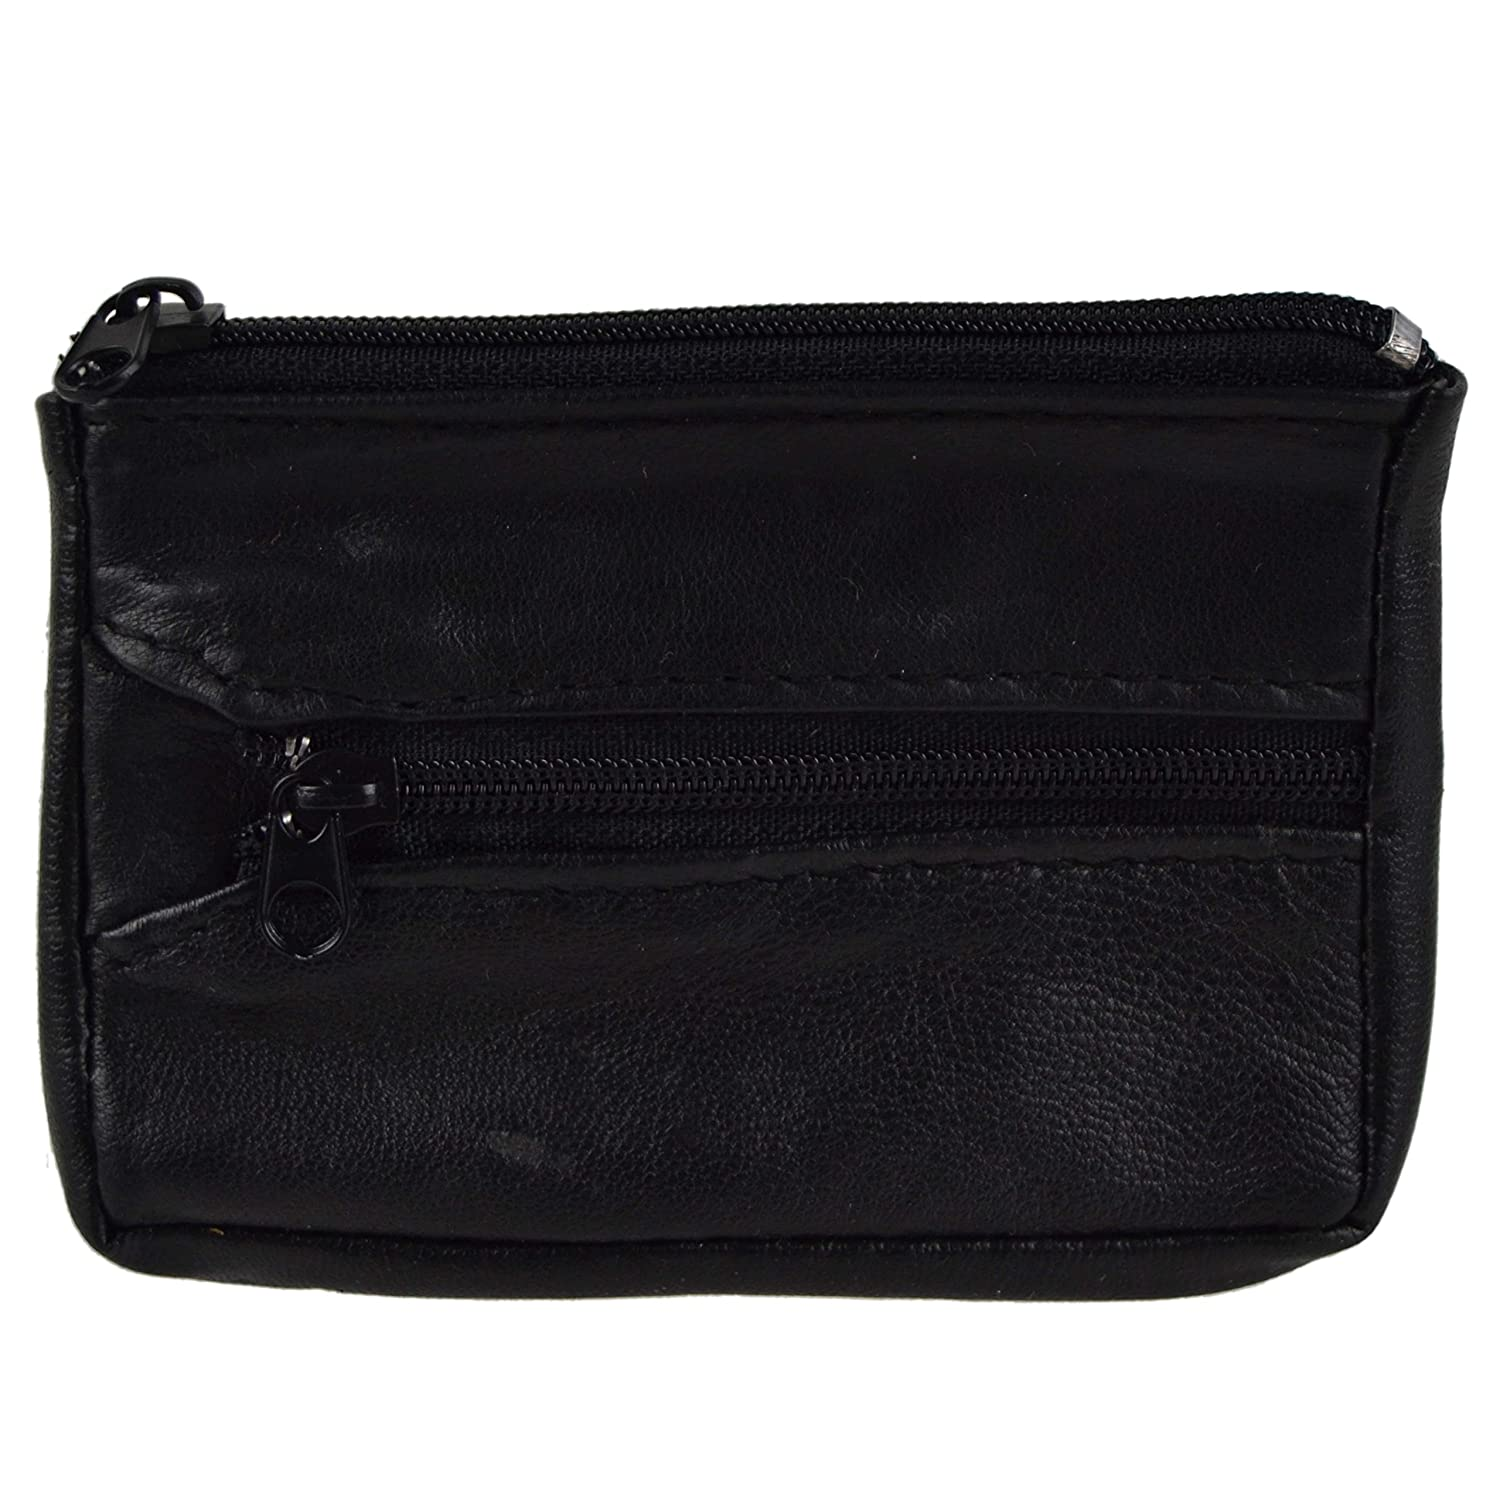 Mens Womens Soft Black LEATHER Key/Coin PURSE by Lorenz Change Chain Handy 1884